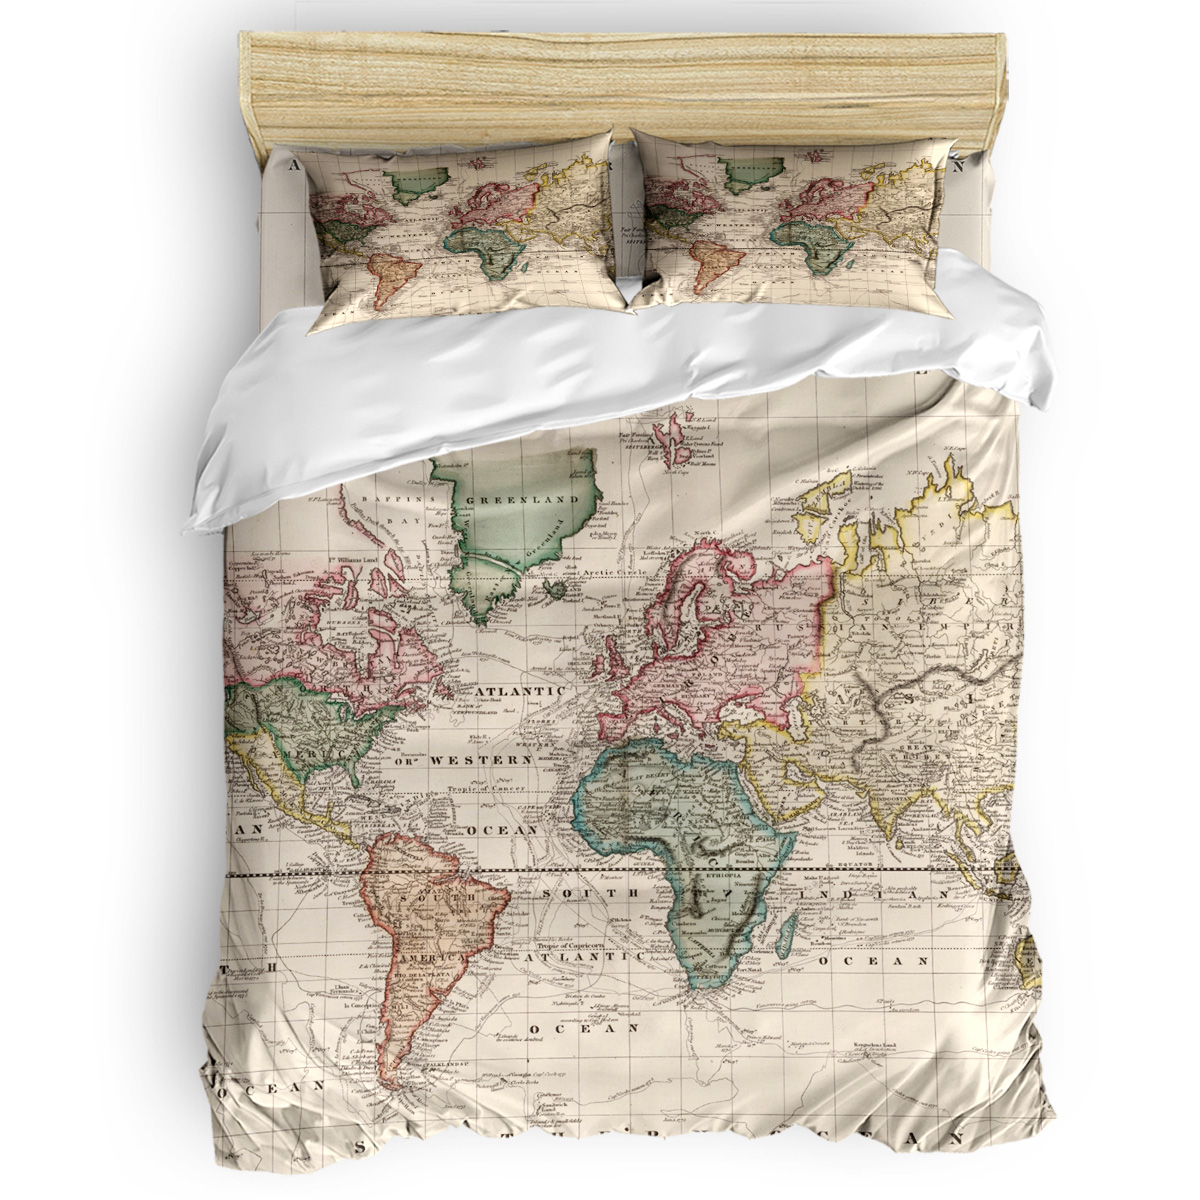 Vintage Map of The World (1833) Duvet Cover 3D King Size ...